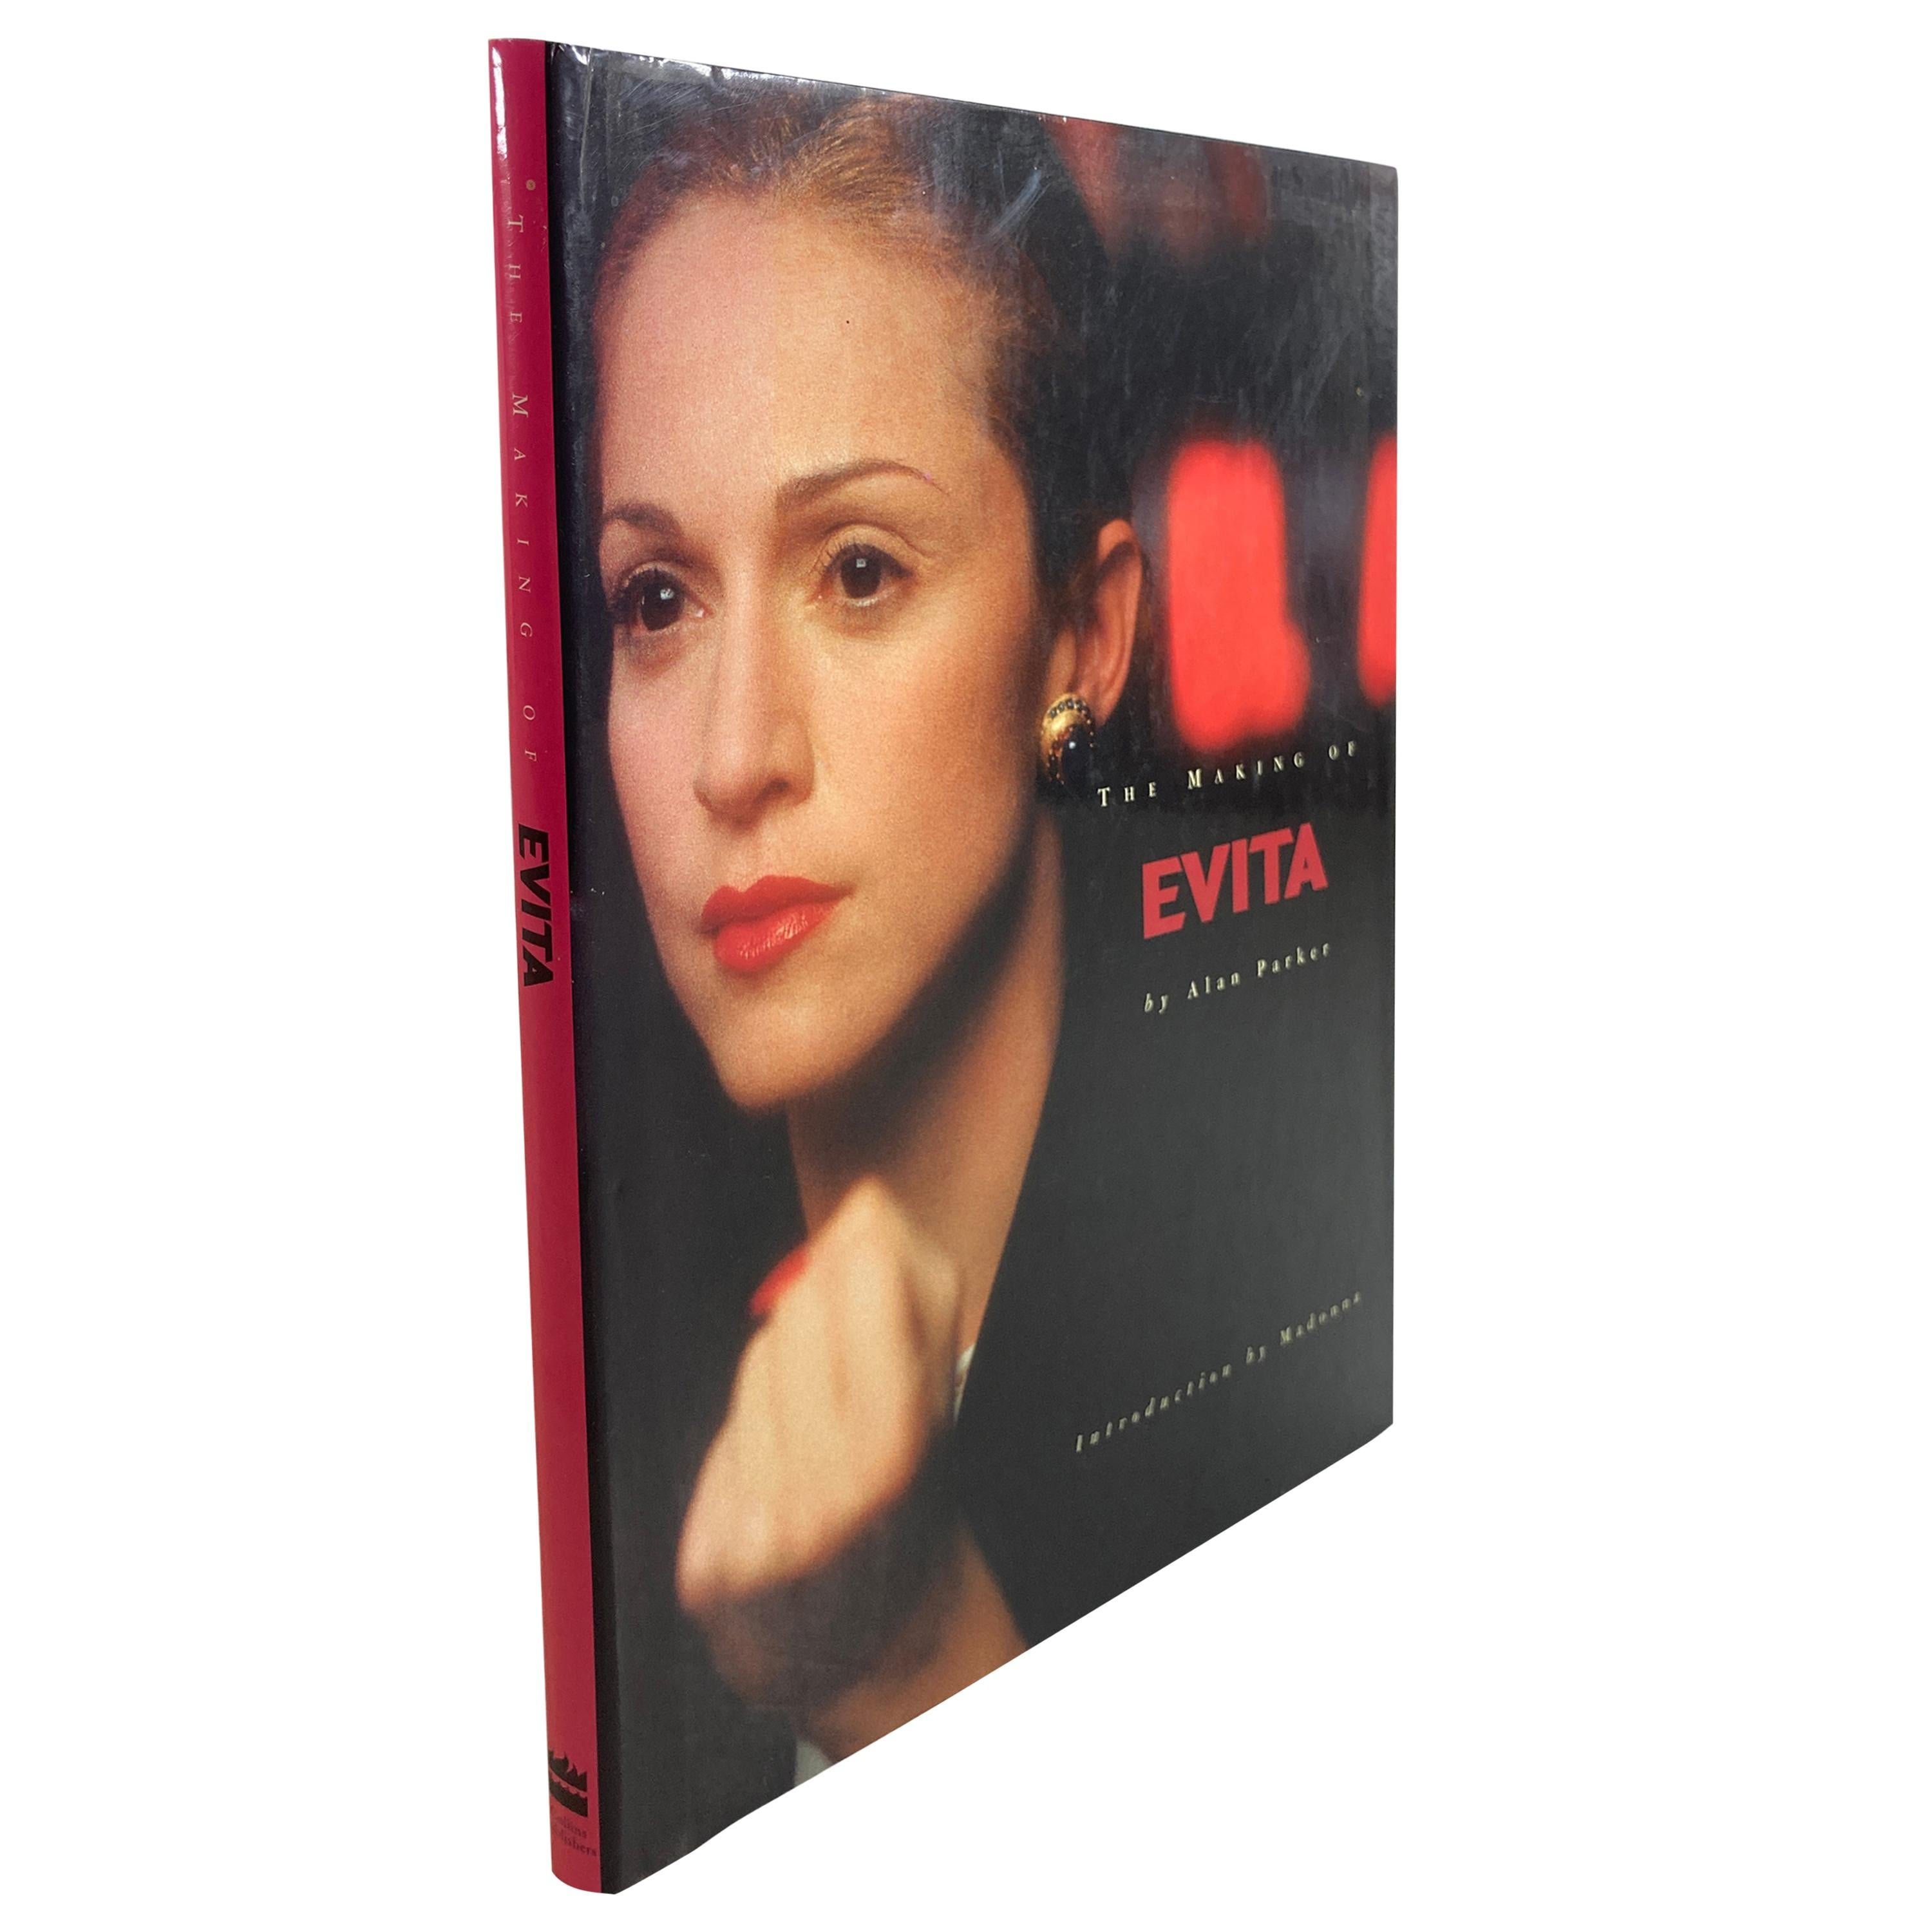 """""""The Making of Evita Book by Alan Parker"""" Coffee Table Book"""